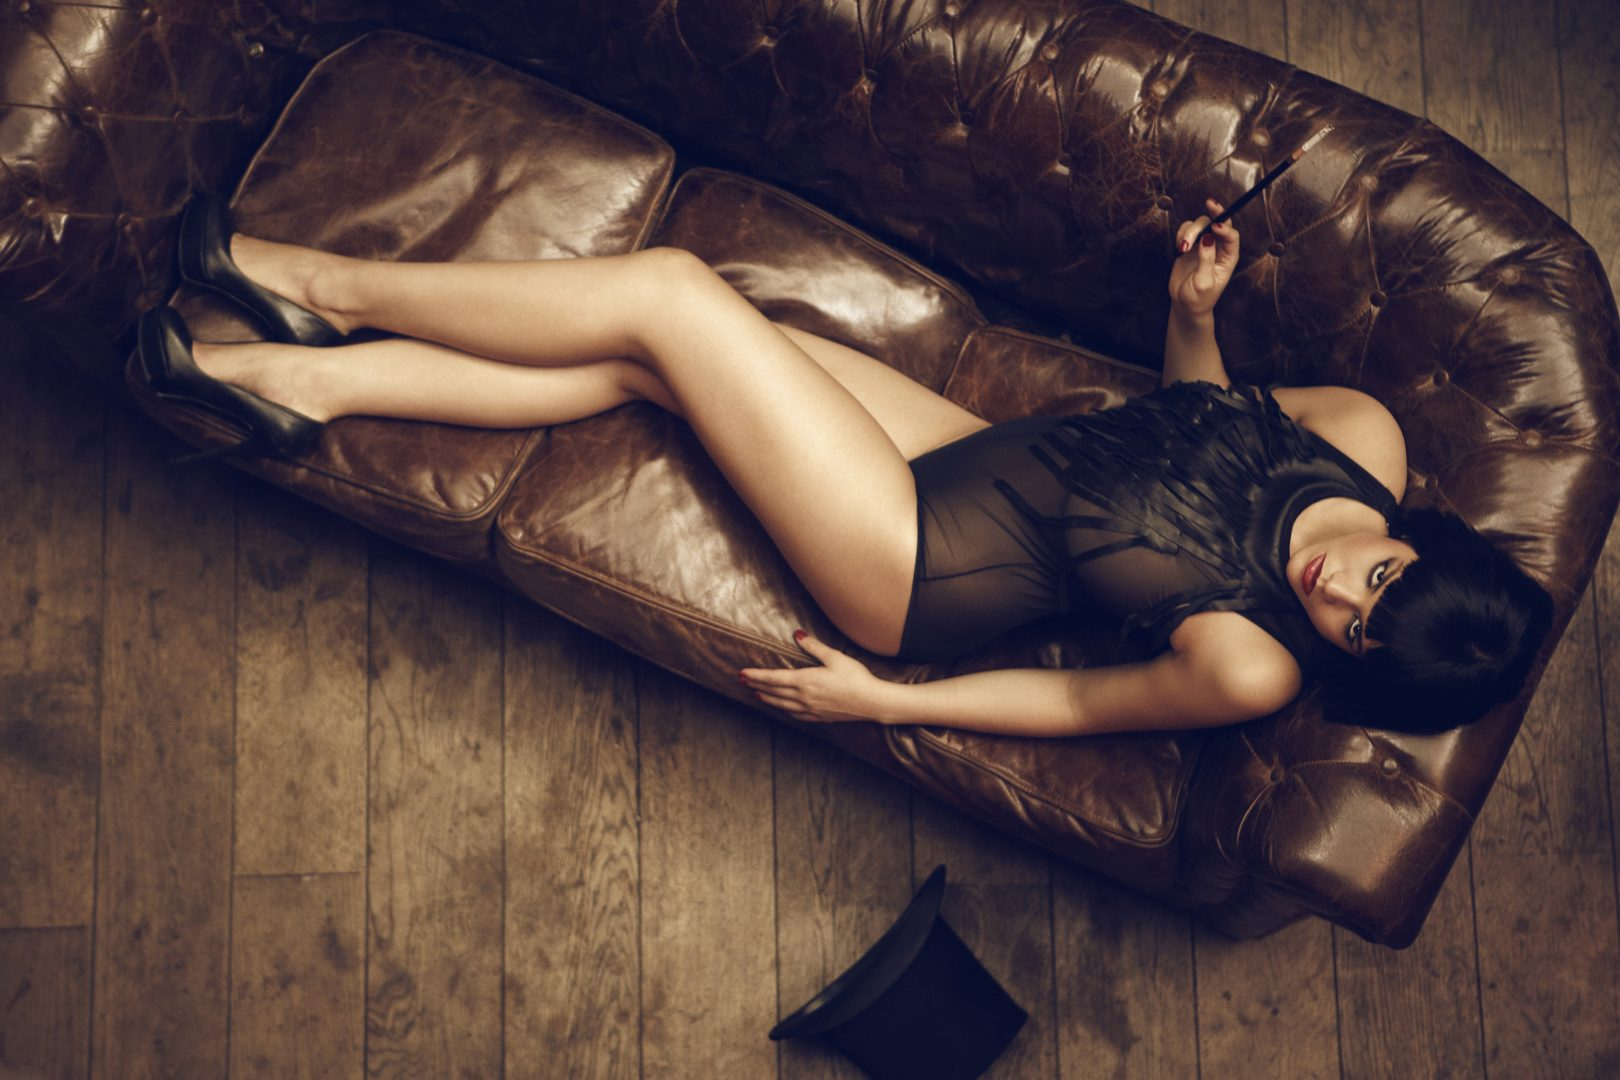 Girl in lingerie lying on sofa by Stefan Rappo